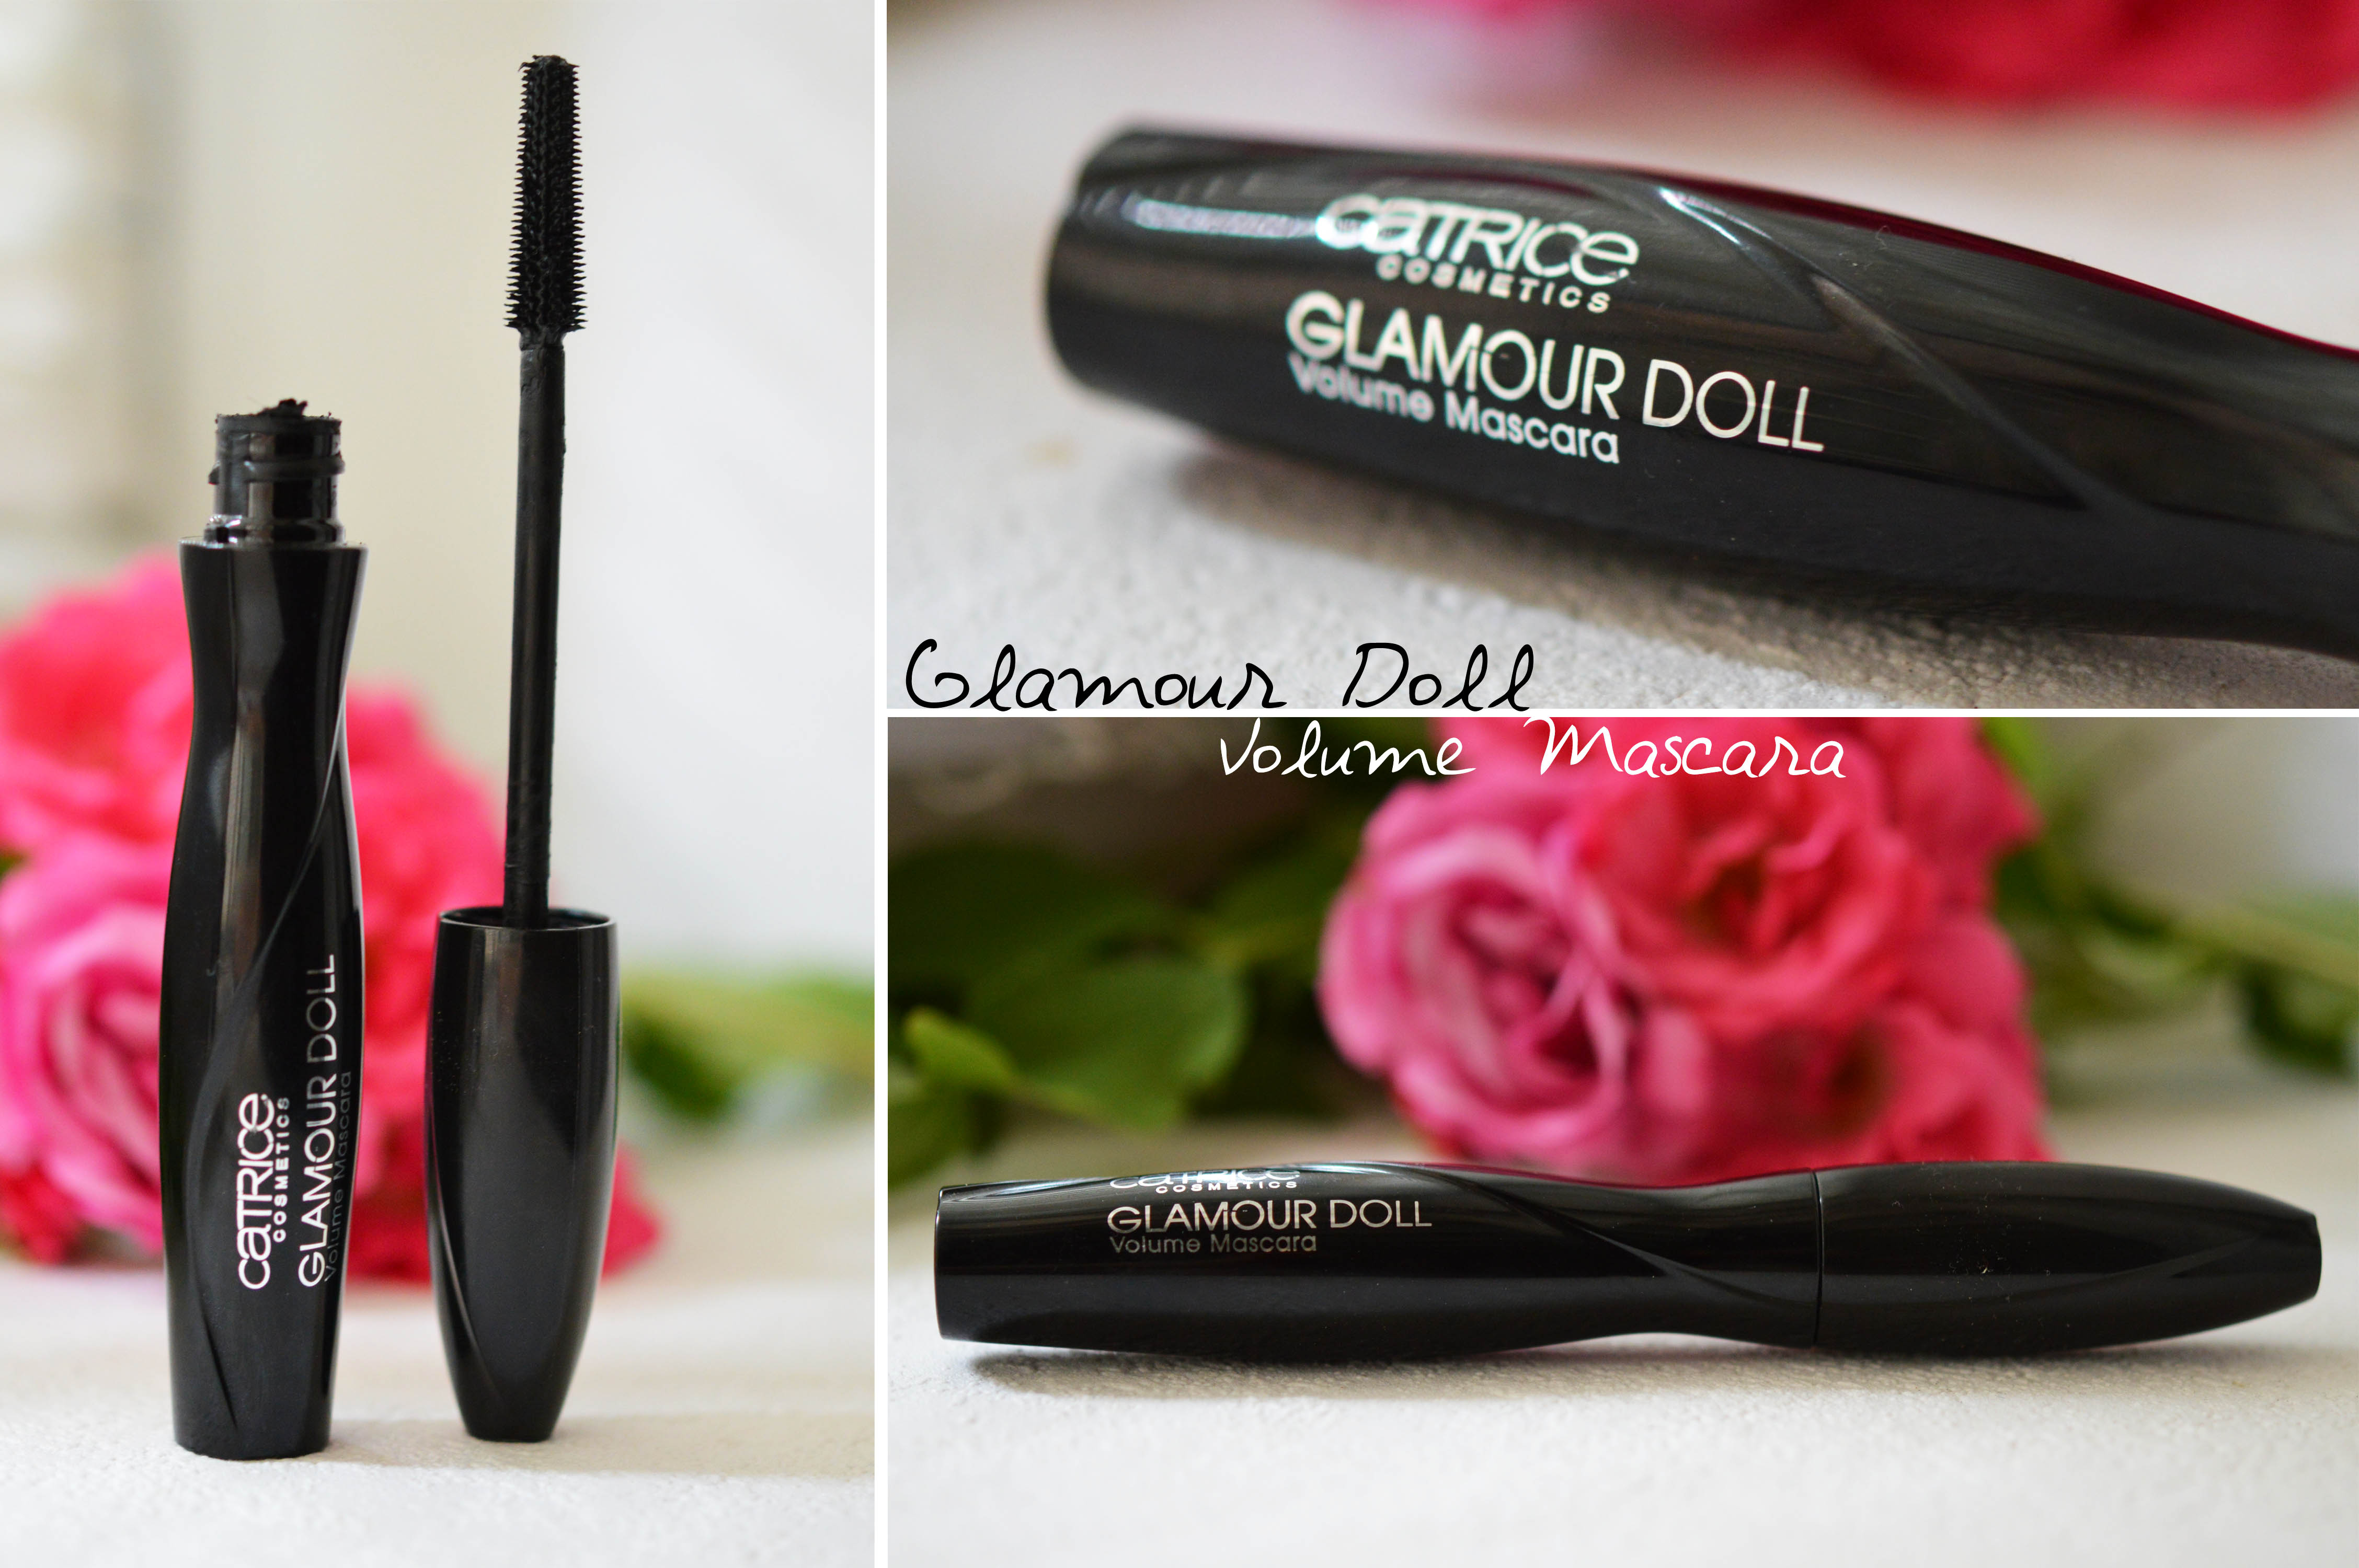 ALITTLEB_BLOG_BEAUTE_CATRICE_LA_MARQUE_QUIL_FAUT_ENVIER_A_NOS_COPINES_FRONTALIERES_EPISODE_2_MASCARA_BABYDOLL_BLACK_ZOOM_PACKAGING